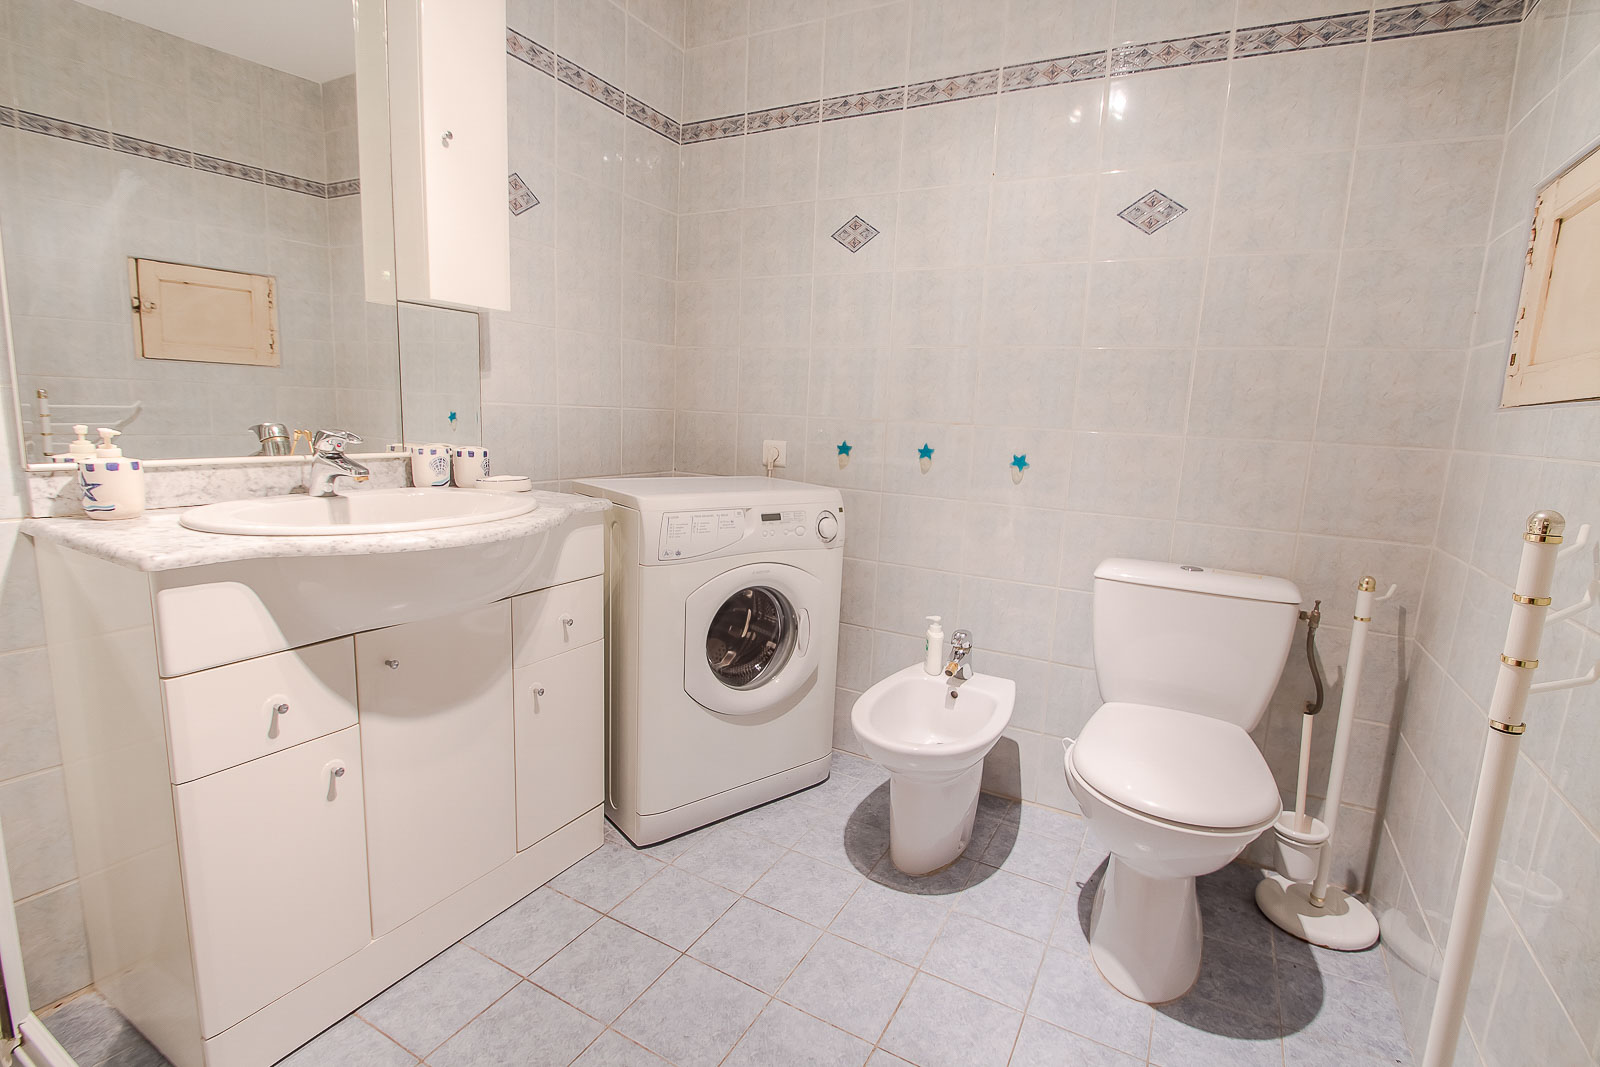 Two Bedroom Property For Sale In Old Town Nice